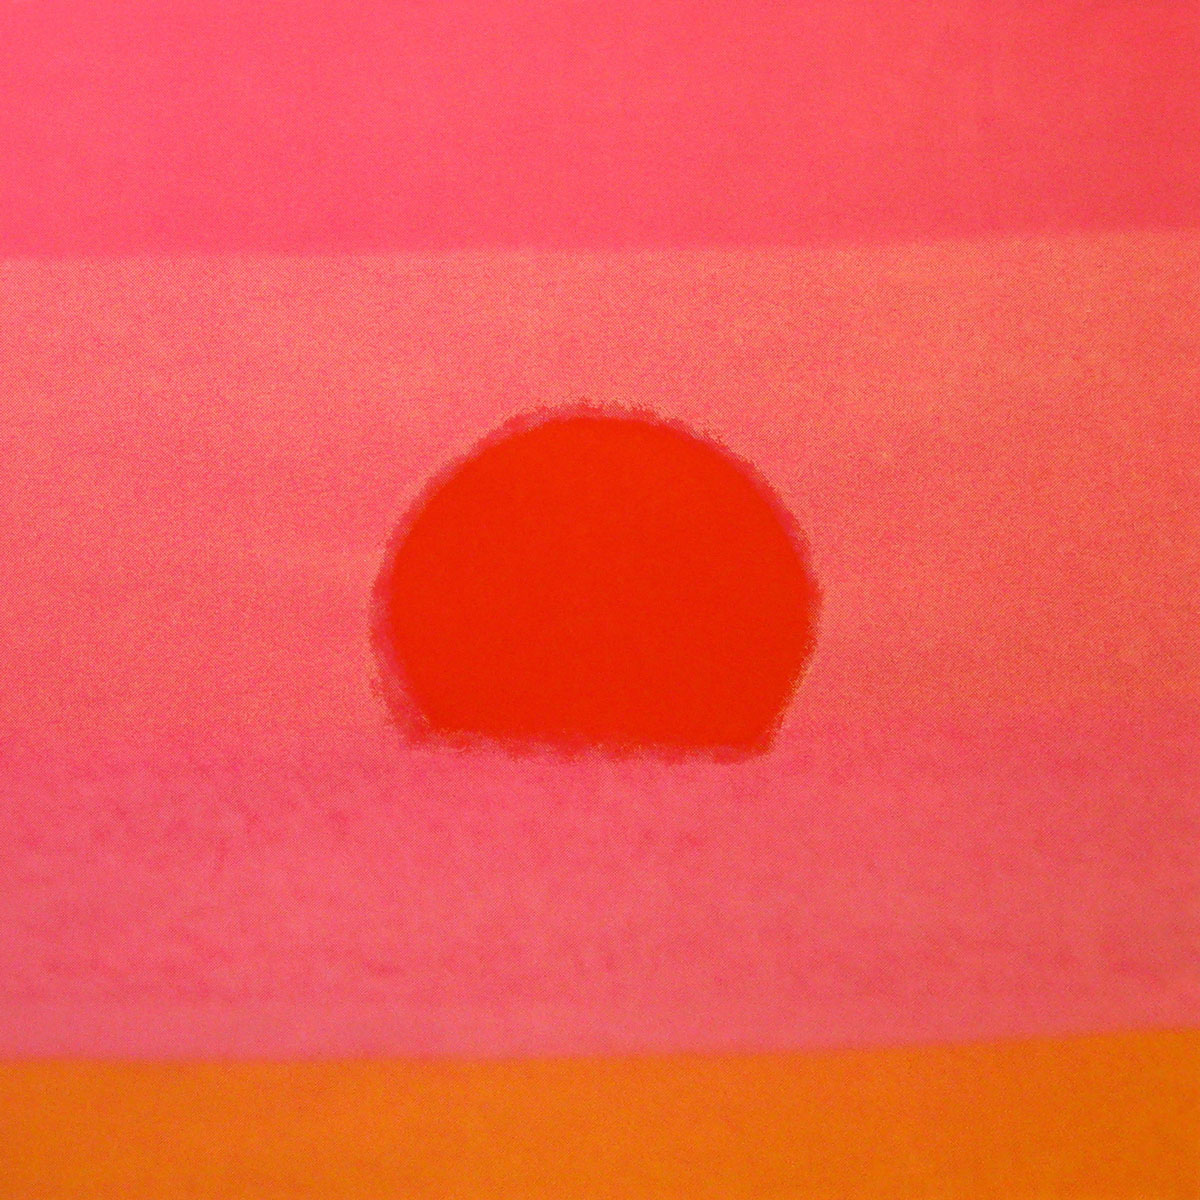 Sunset 88 Orange by Andy Warhol